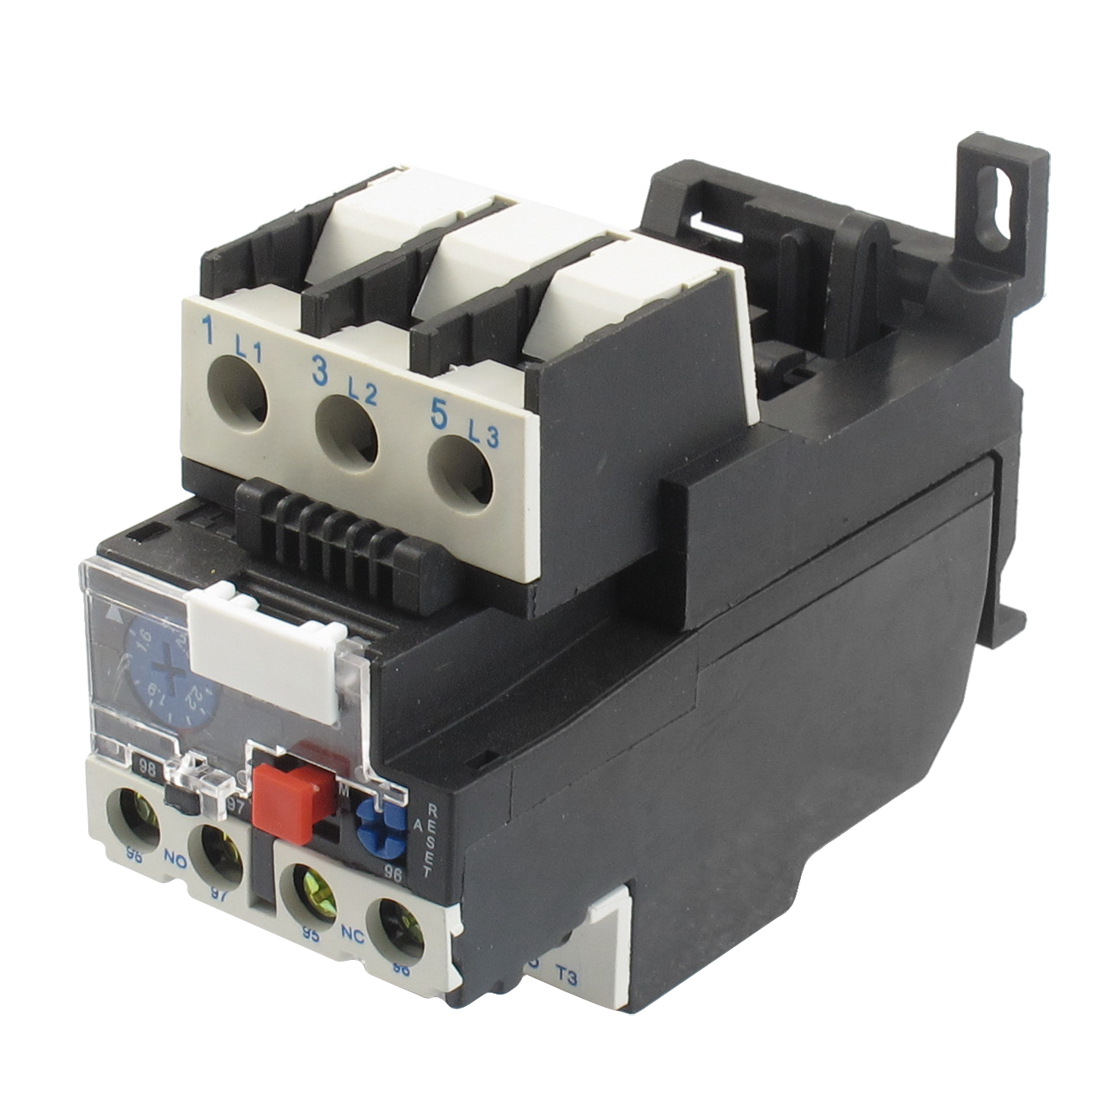 690V 2.5A Rated Current 1 NO 1 NC Thermal Overload Relay